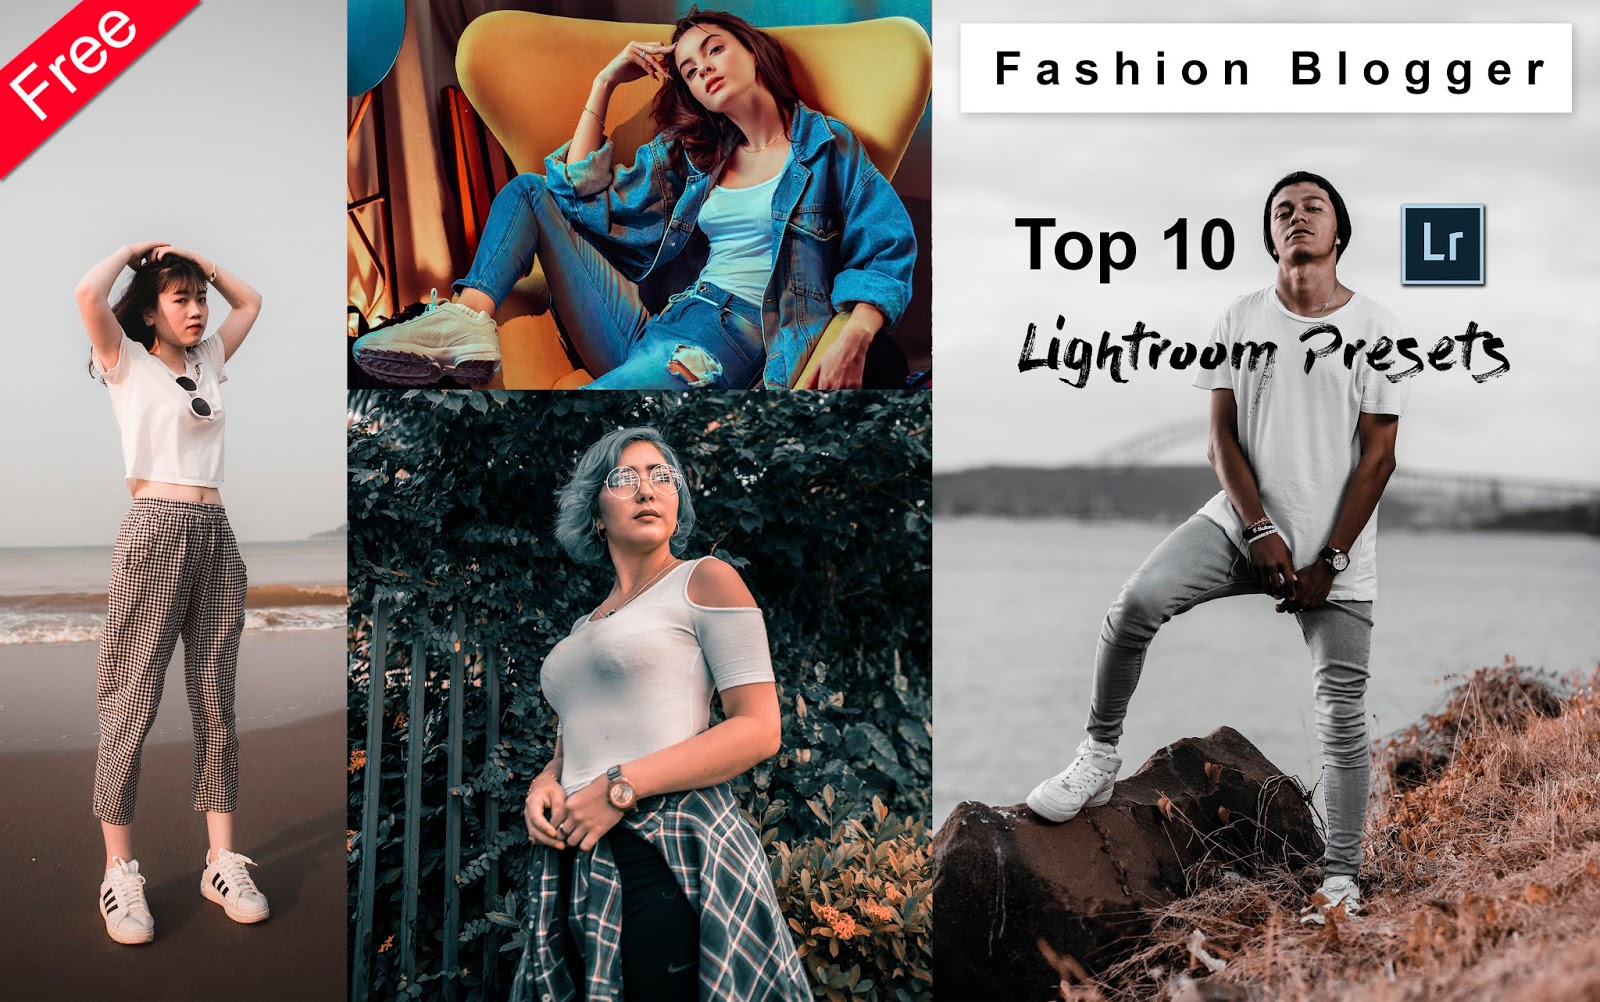 Download Top 10 Fashion Blogger Lightroom Presets for Free | How to Edit Fashion Photos in Lightroom